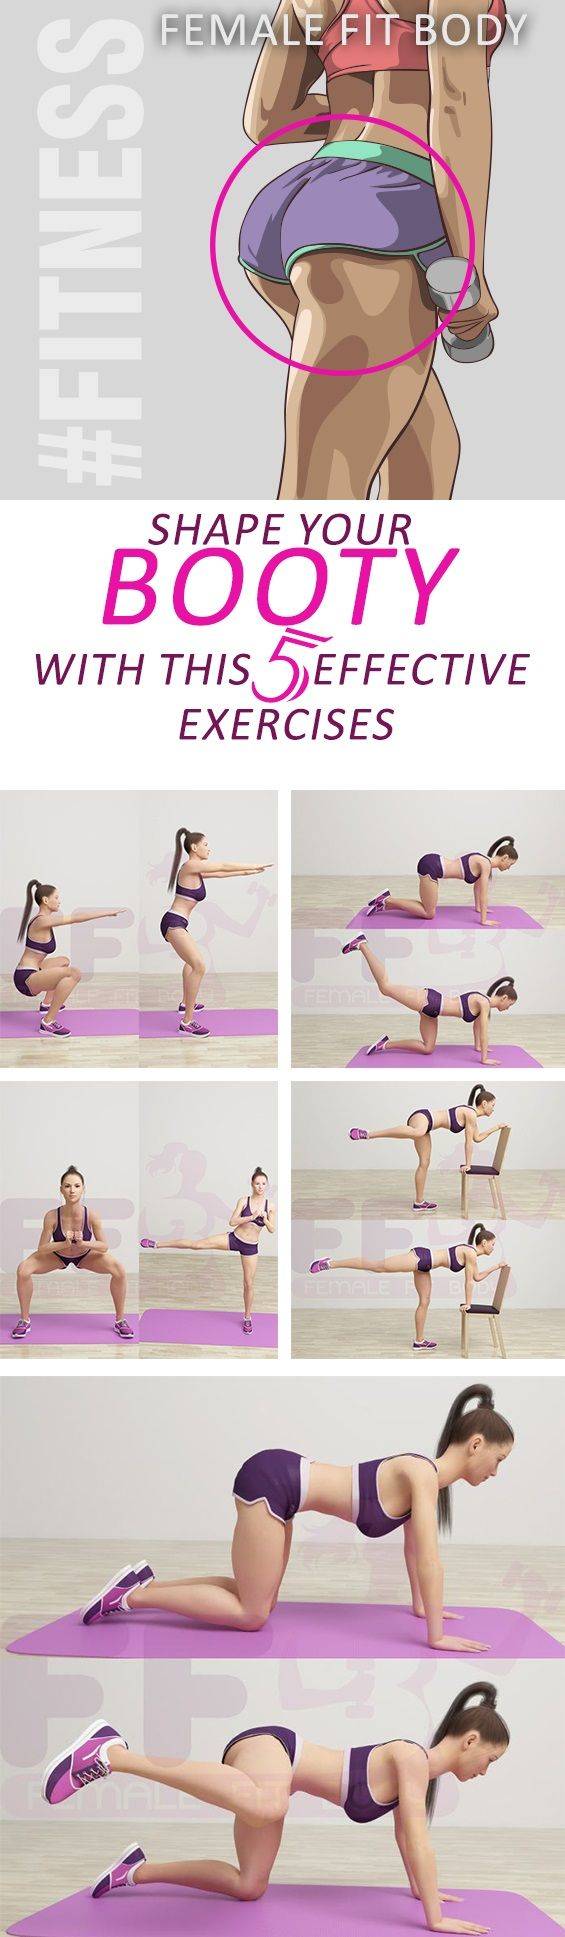 Shape Your Booty With This 5 Effective Exercises